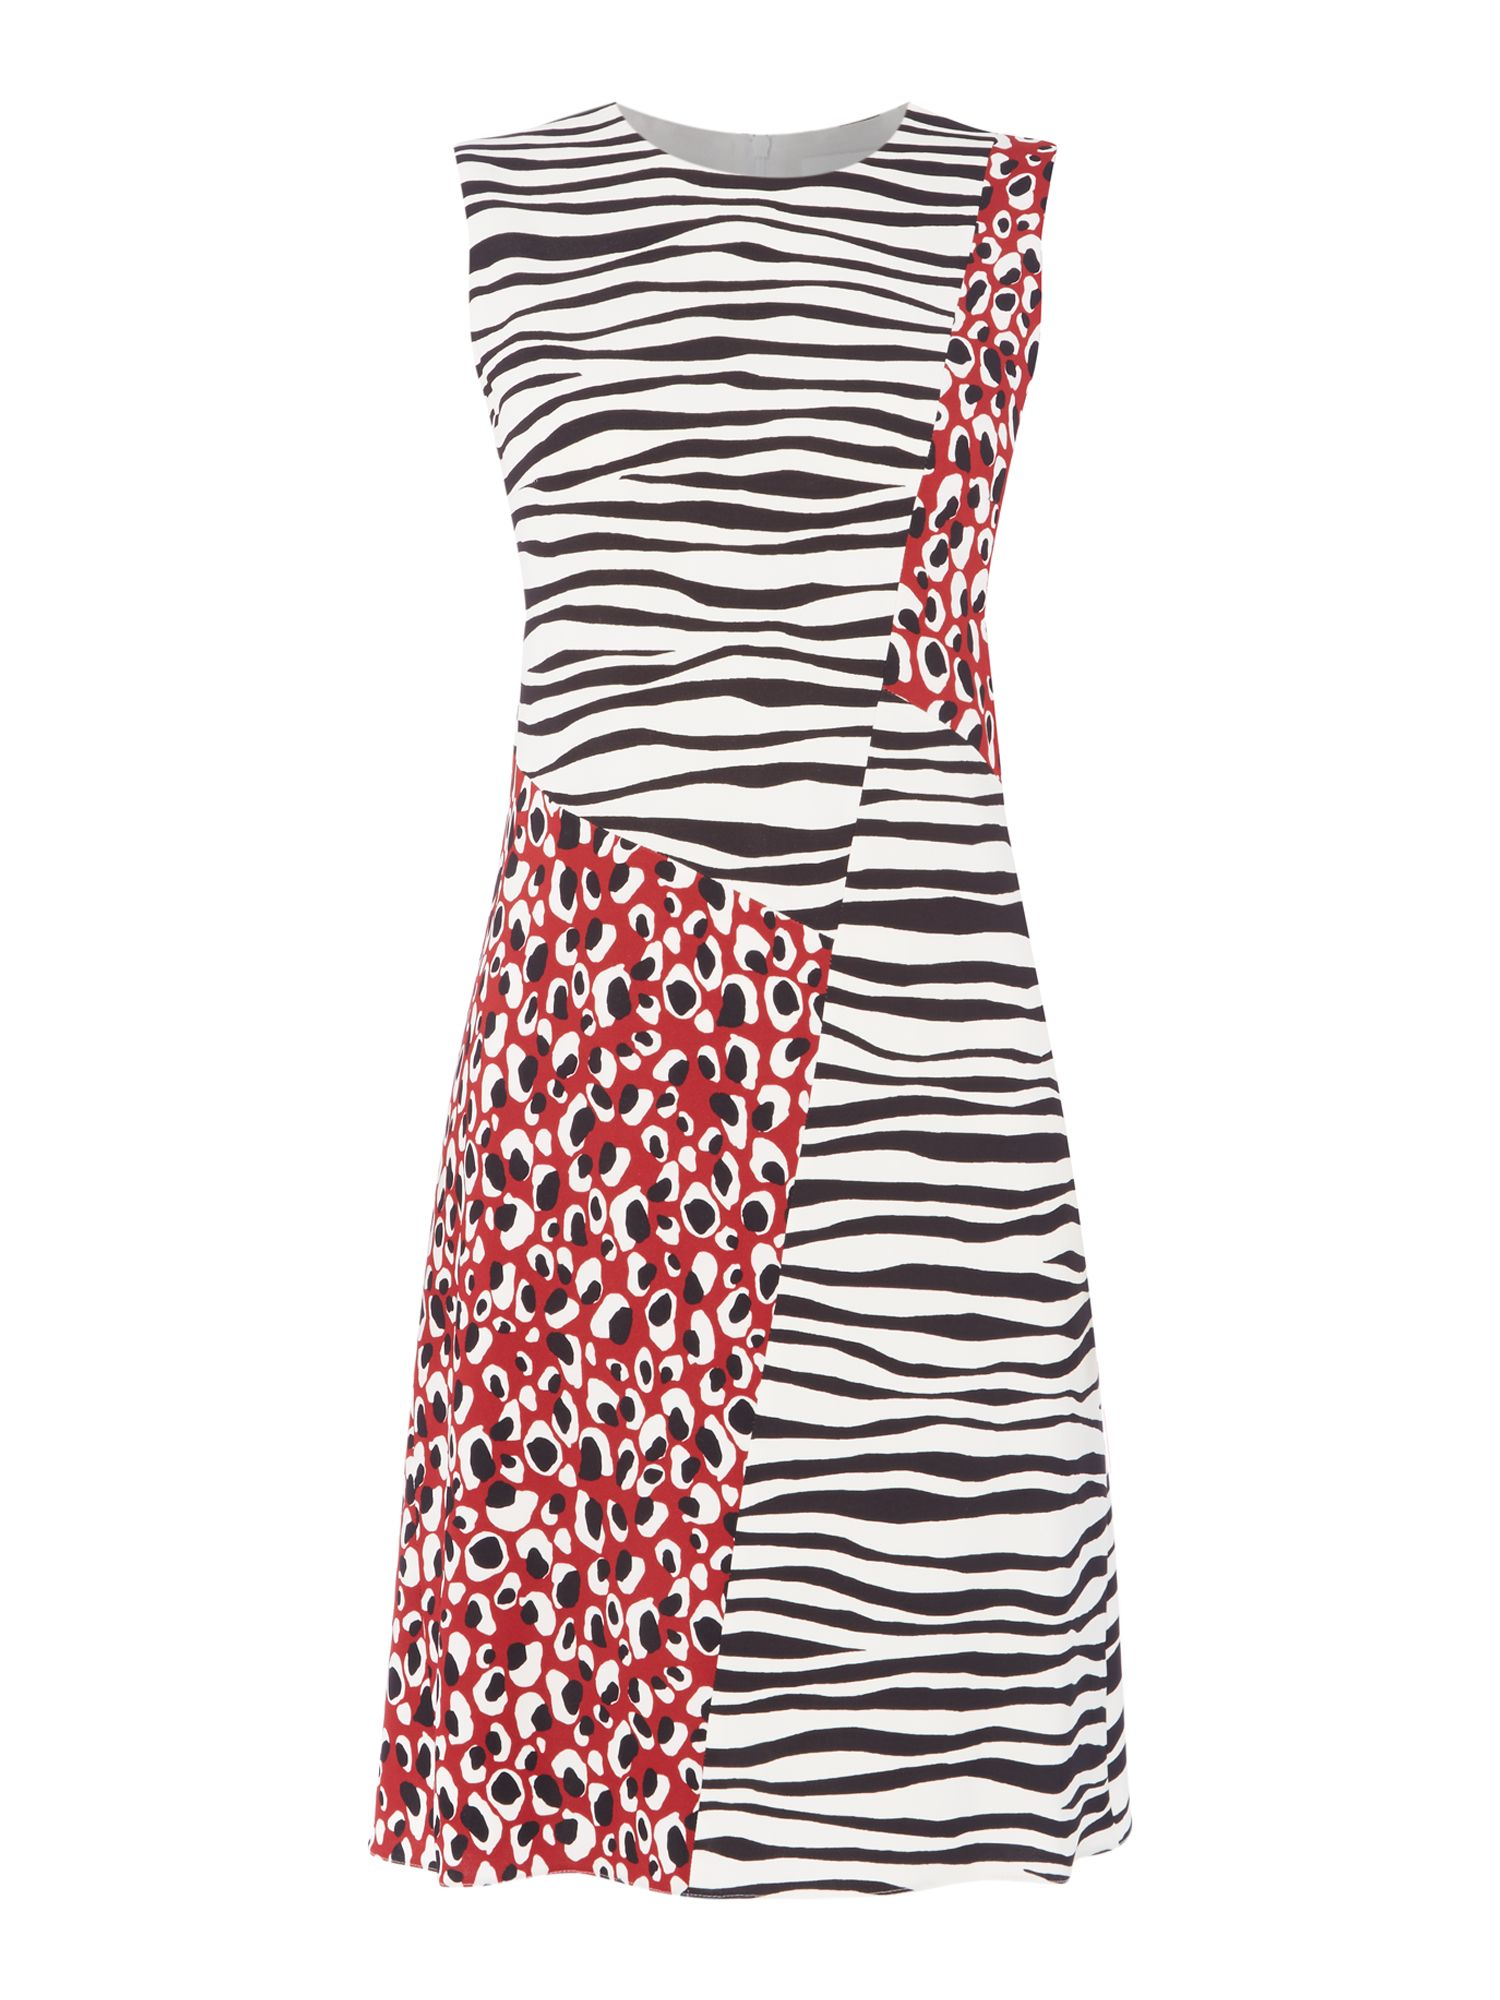 Hugo Boss Diseba leopard and zebra print dress, Multi-Coloured